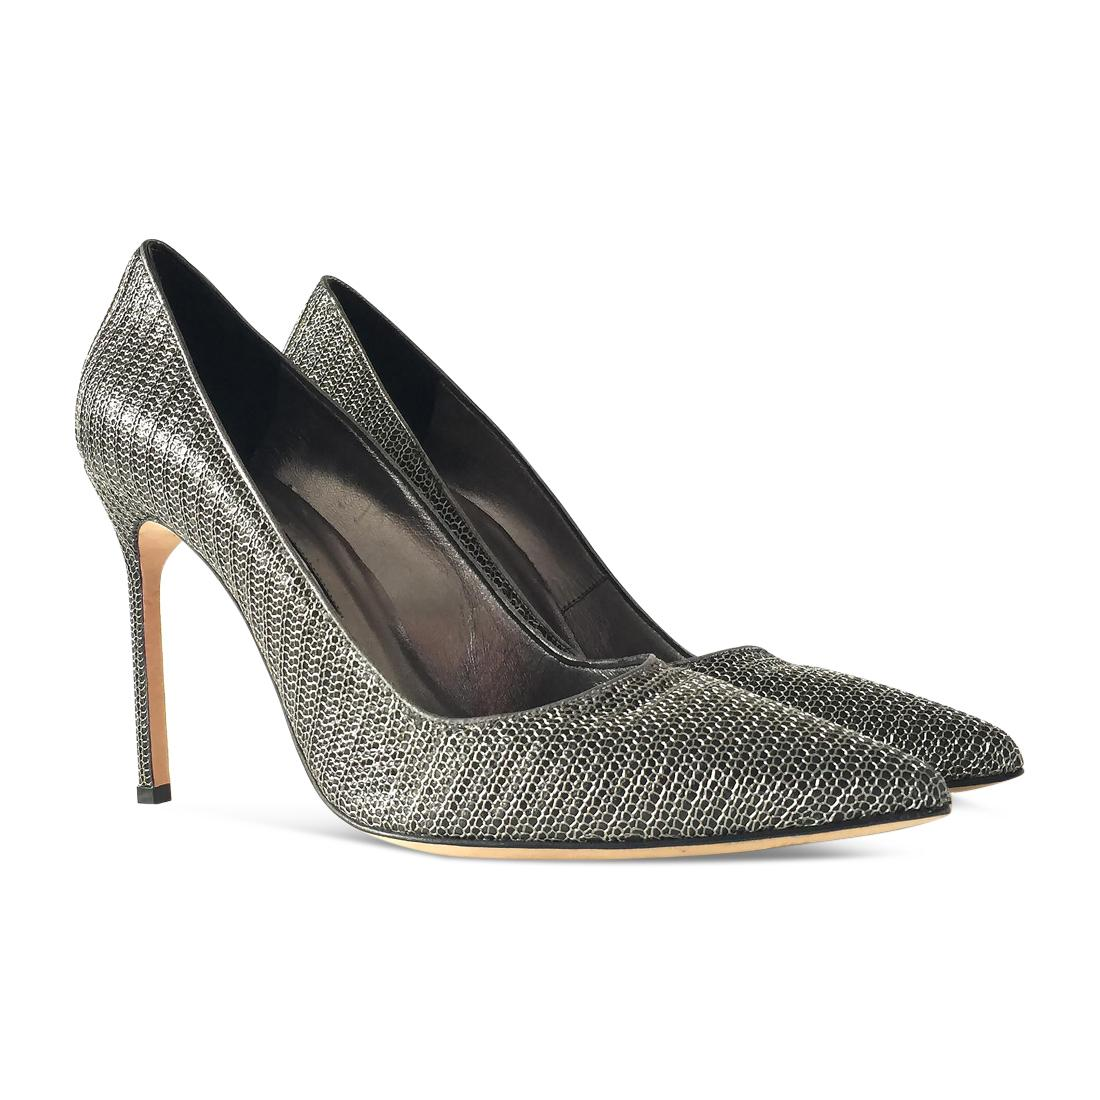 for sale official site Manolo Blahnik Snakeskin-Trimmed Pumps view cheap online outlet great deals 4Z5ae33WQS